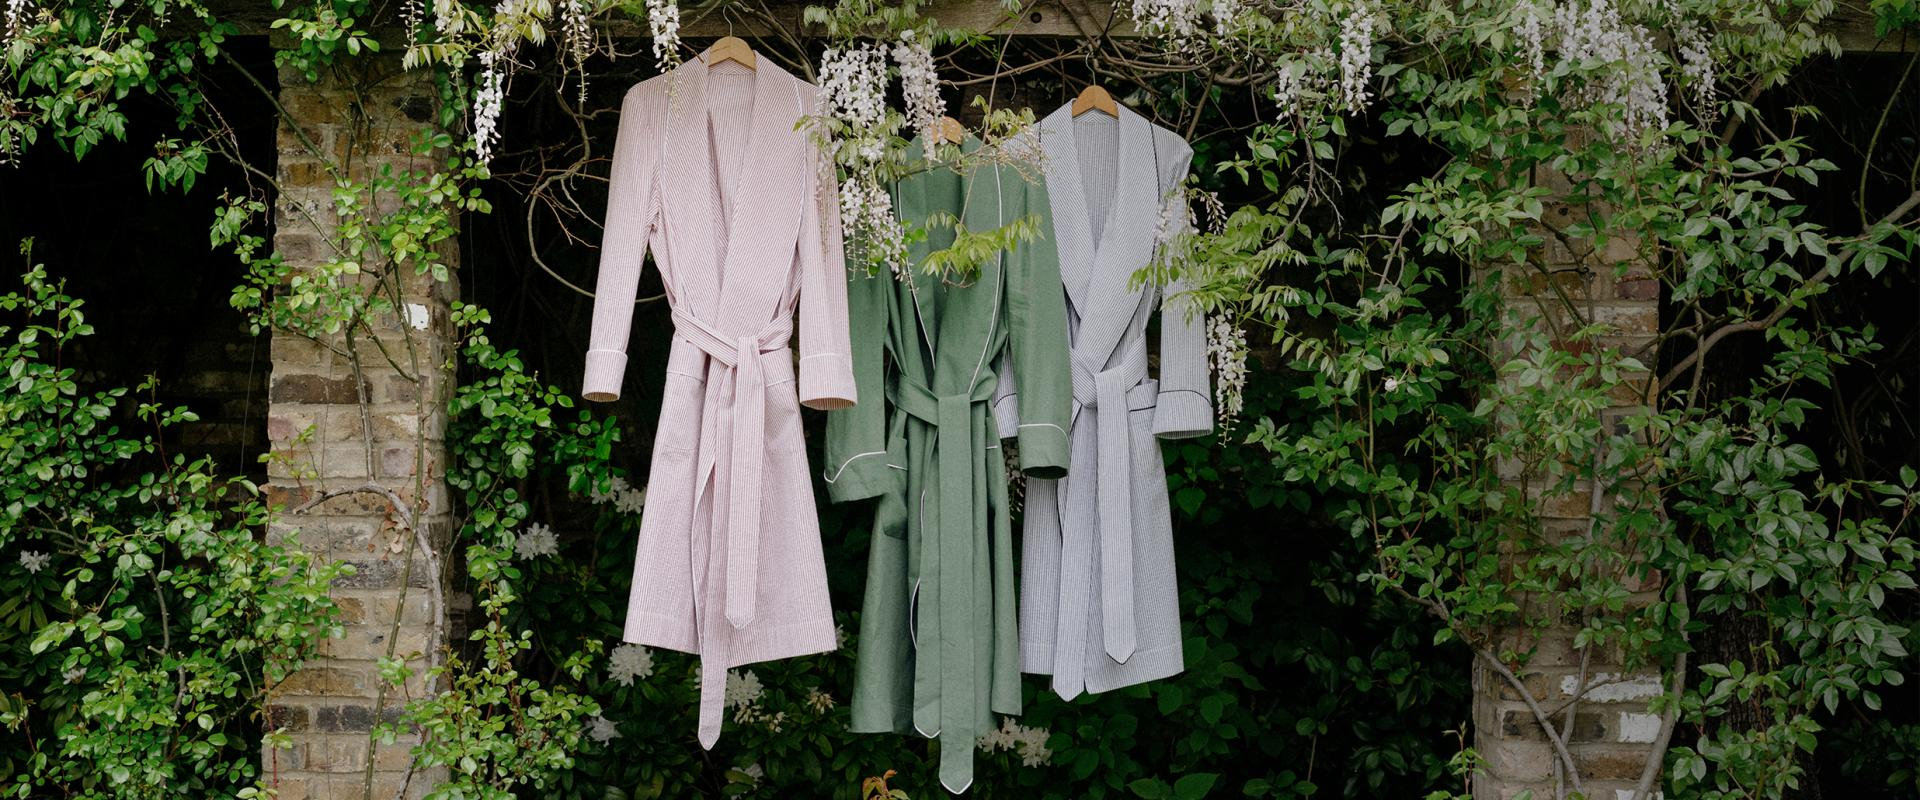 Summer Weight </br> Dressing Gowns